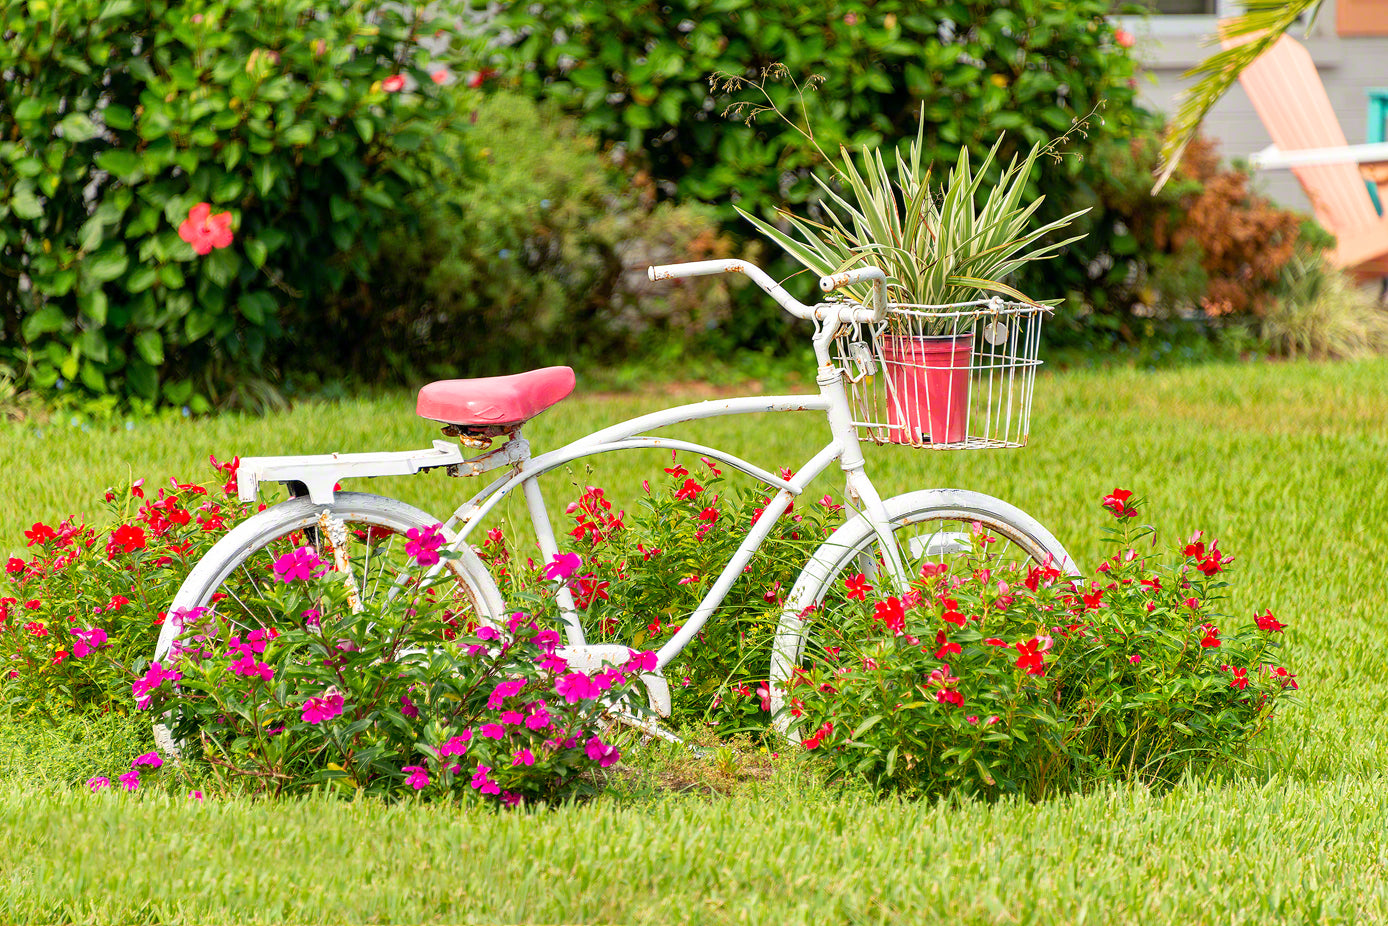 A photo by Mike Ring of a rusty old beach cruiser with pink flowers